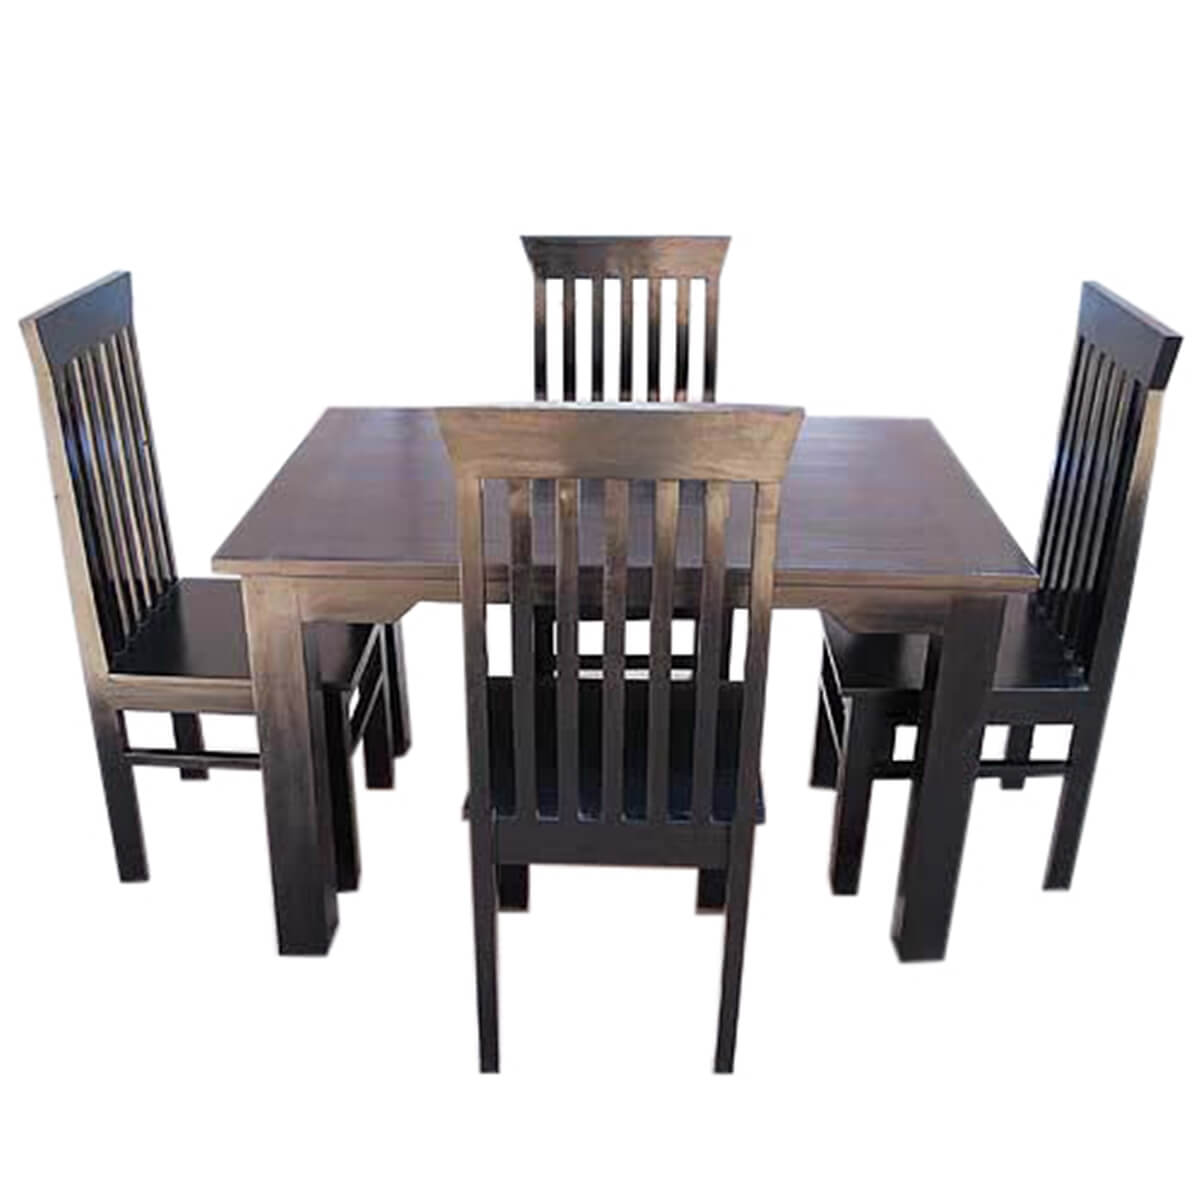 Contemporary lincoln kitchen dining room table chairs set Contemporary dining room sets with benches